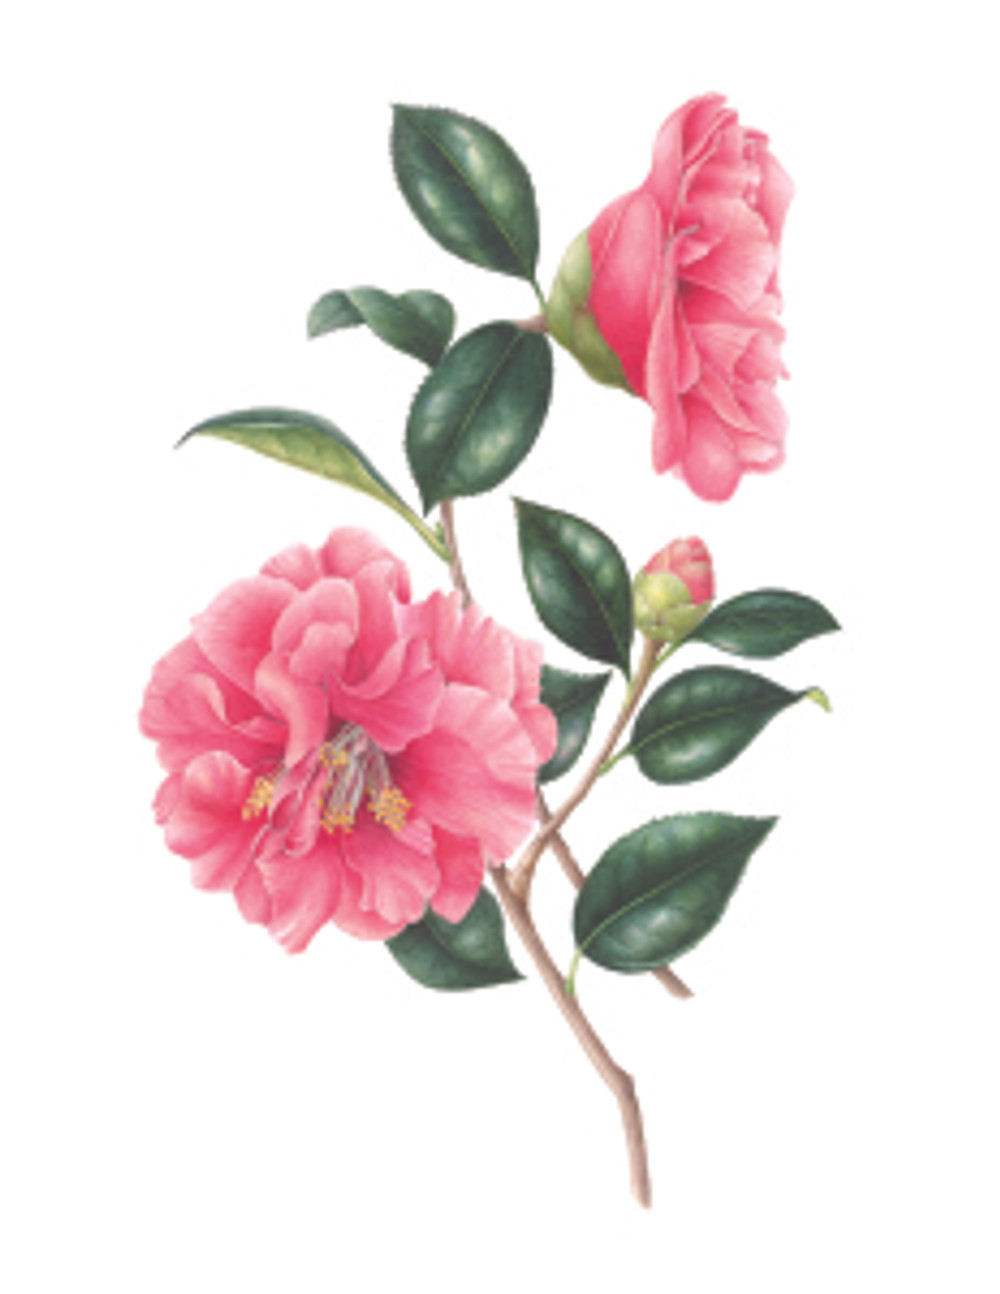 """Gilly Shaeffer, """"Camellia,"""" watercolor on paper, 2015, all rights reserved."""